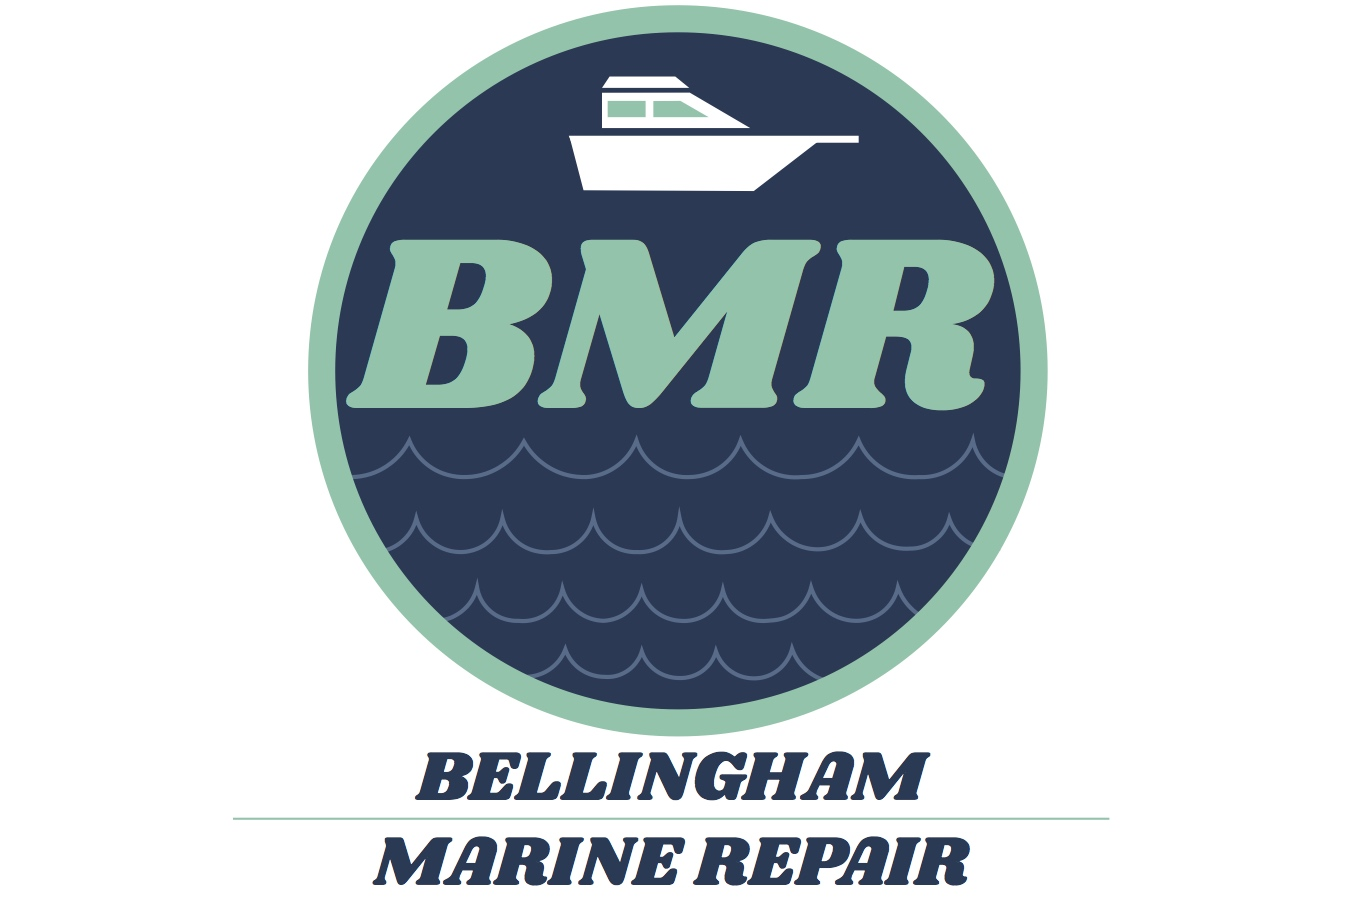 Bellingham Marine Repair Inc.